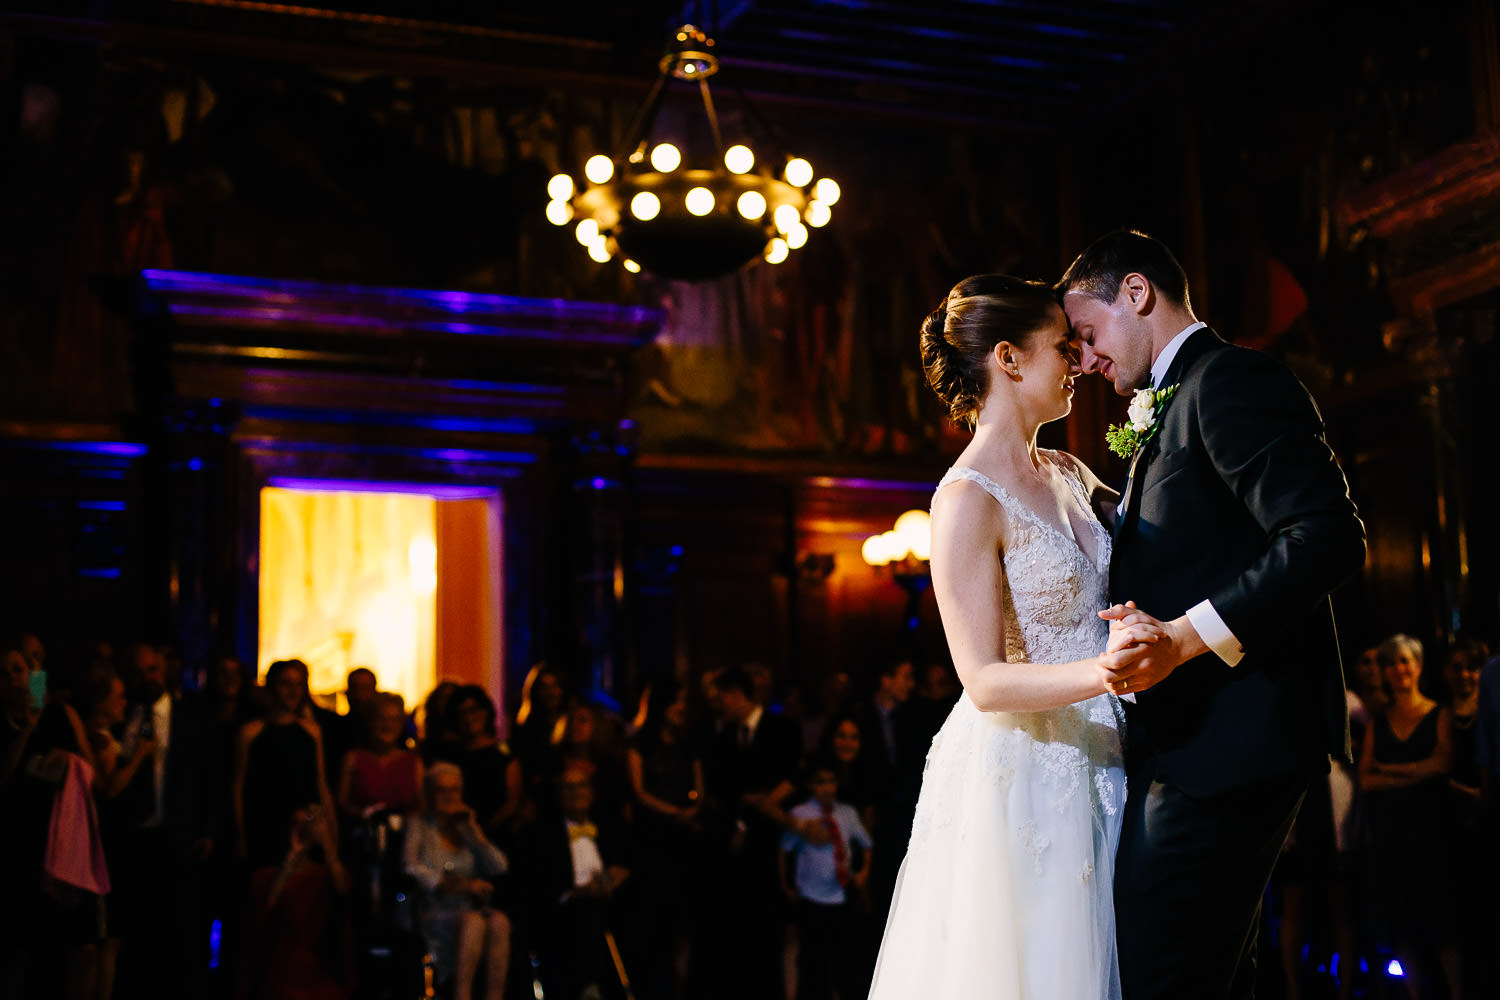 Boston Public Library Wedding.Boston Public Library Wedding Lauren Brendan S Elegant